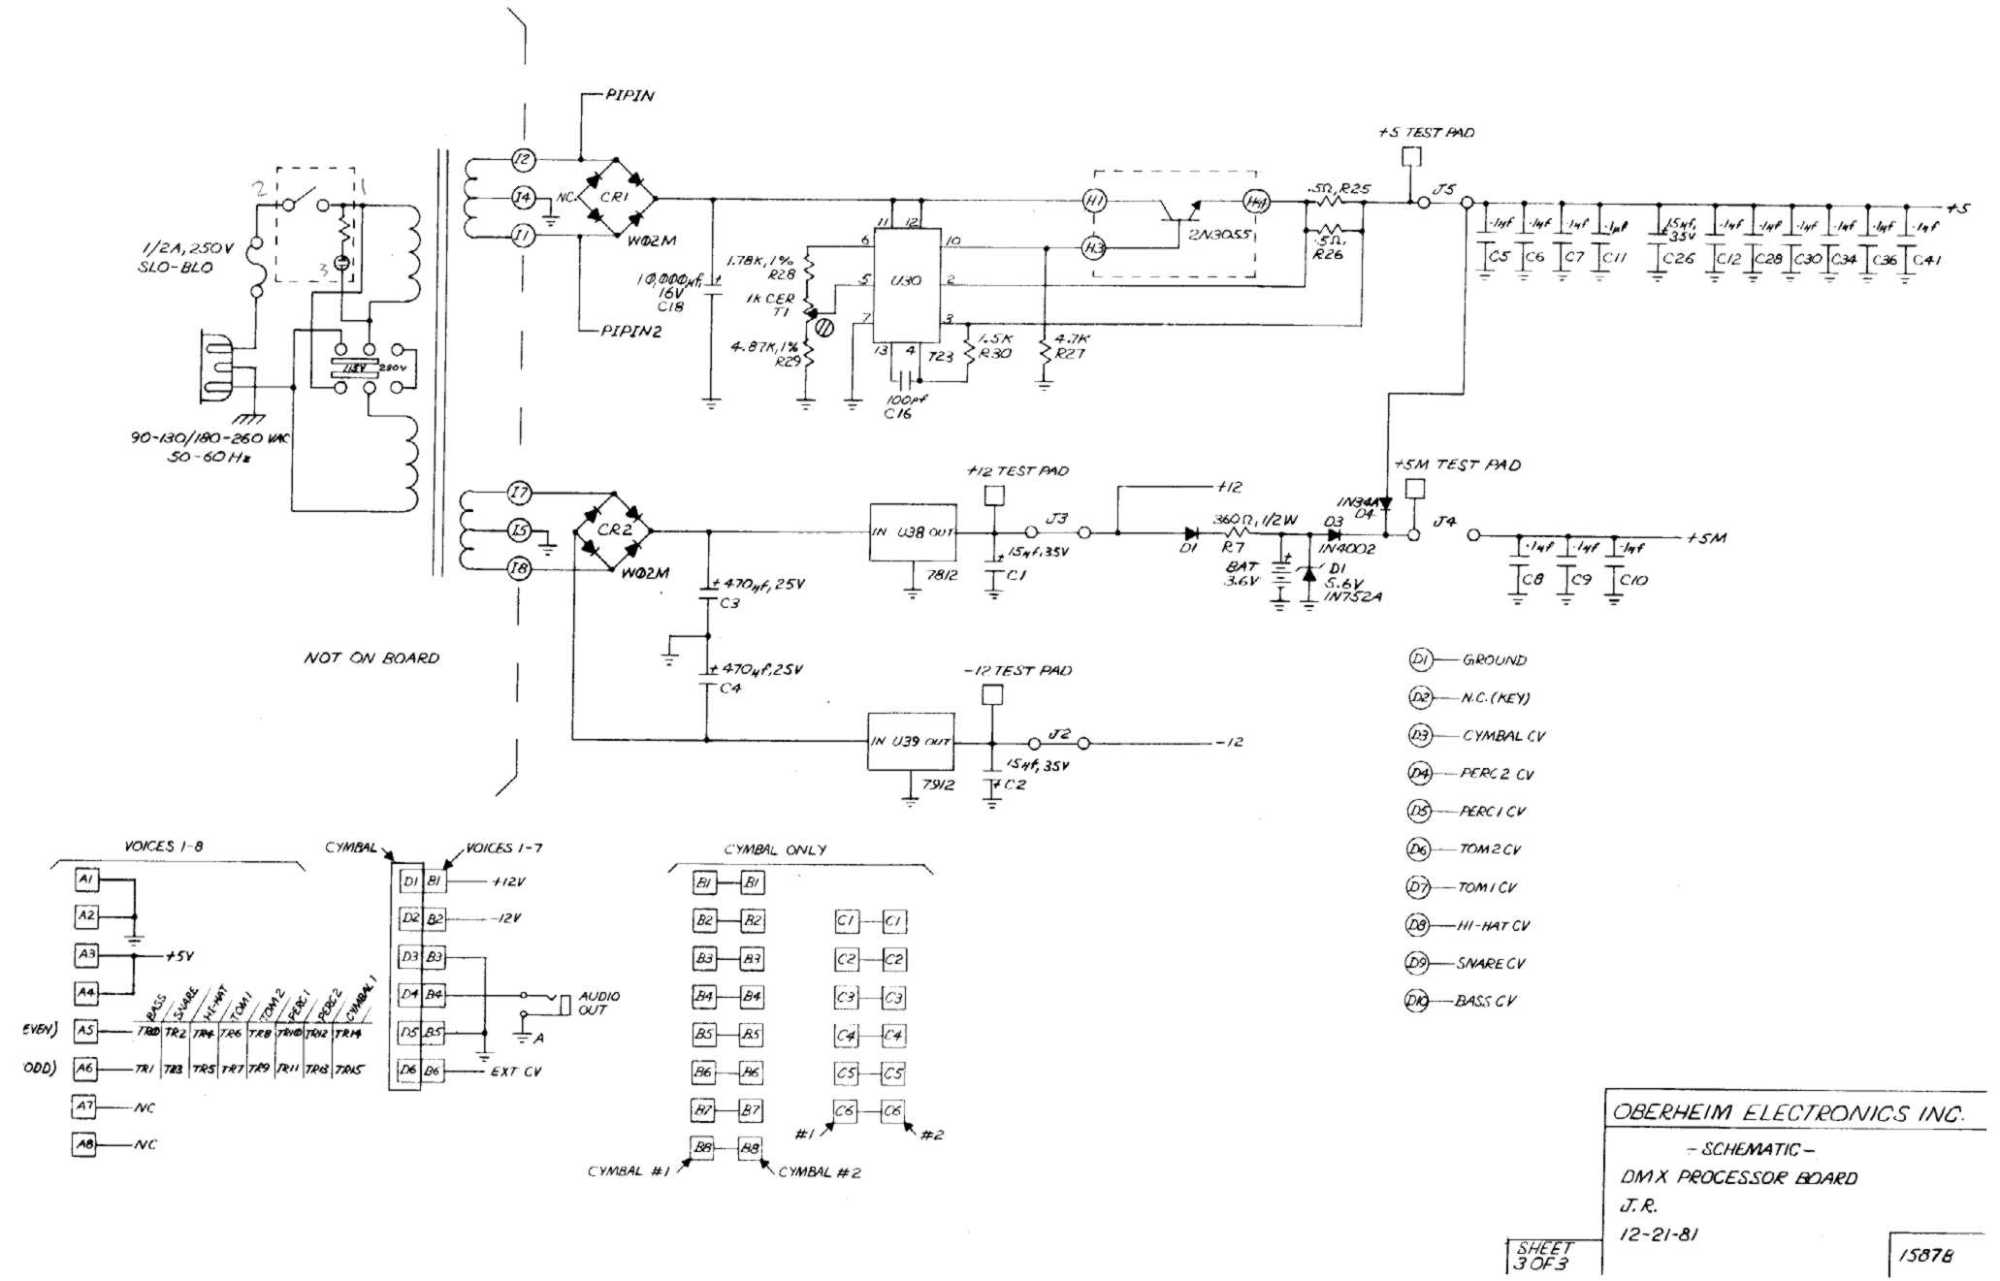 hight resolution of dmx processor board schematic 3 of 3